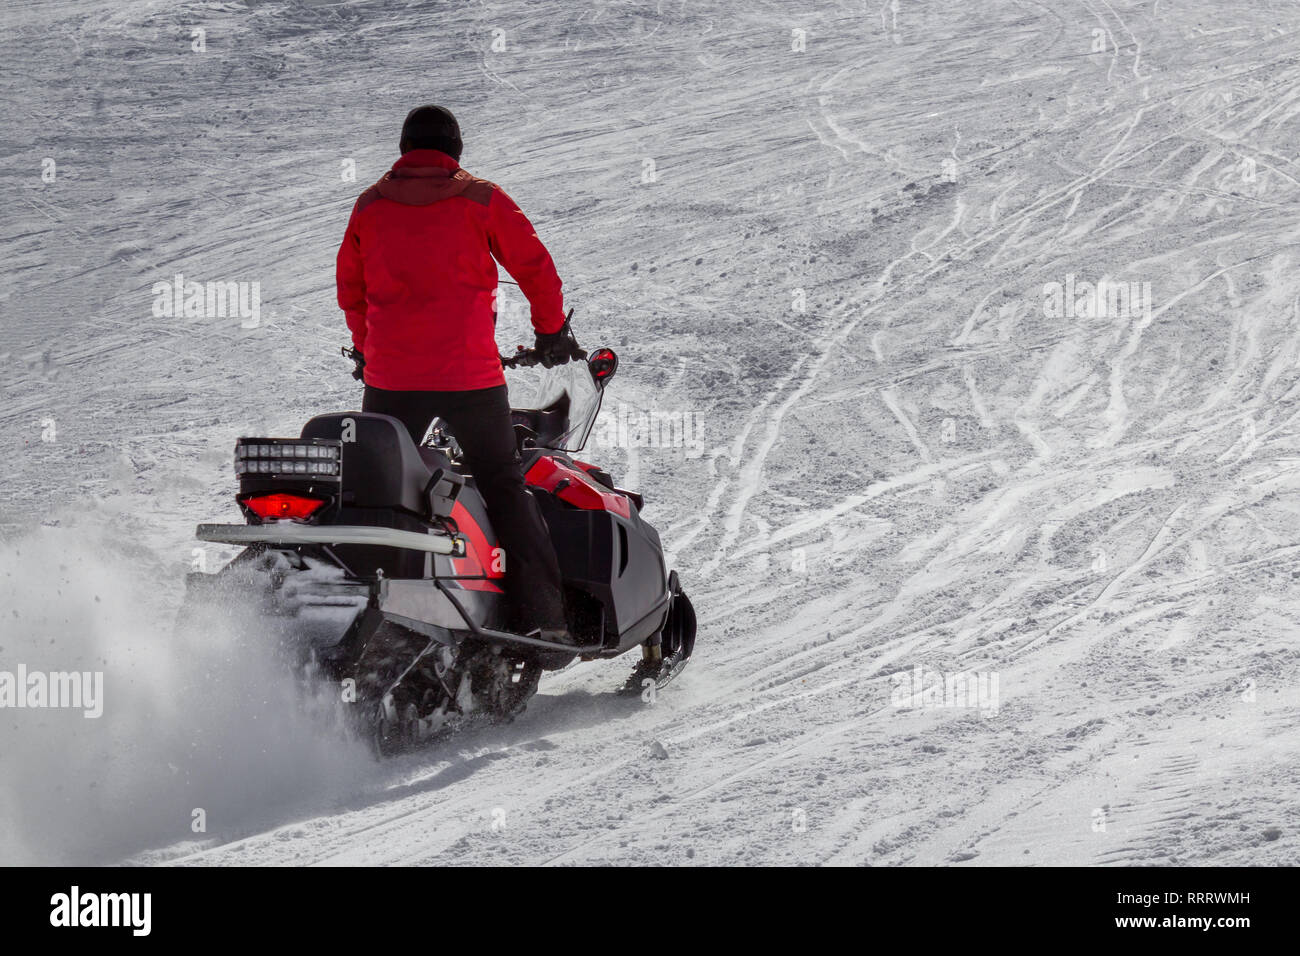 Man driving a snowmobile - Stock Image